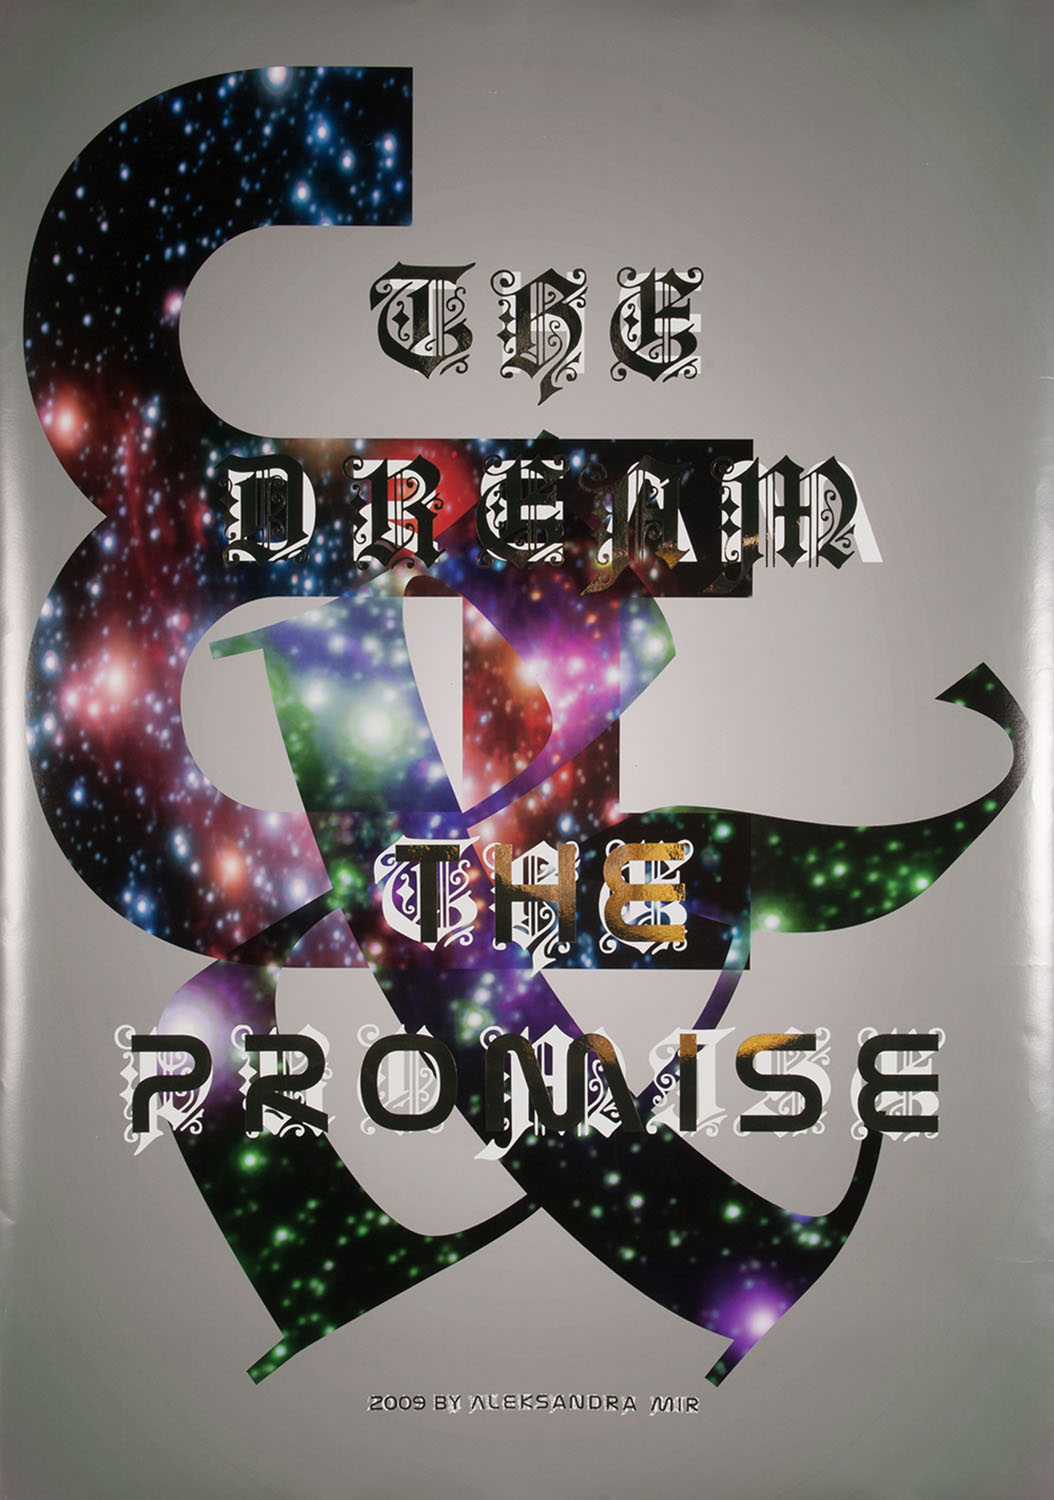 the-dream-and-the-promise-alexandra-mir-poster-01